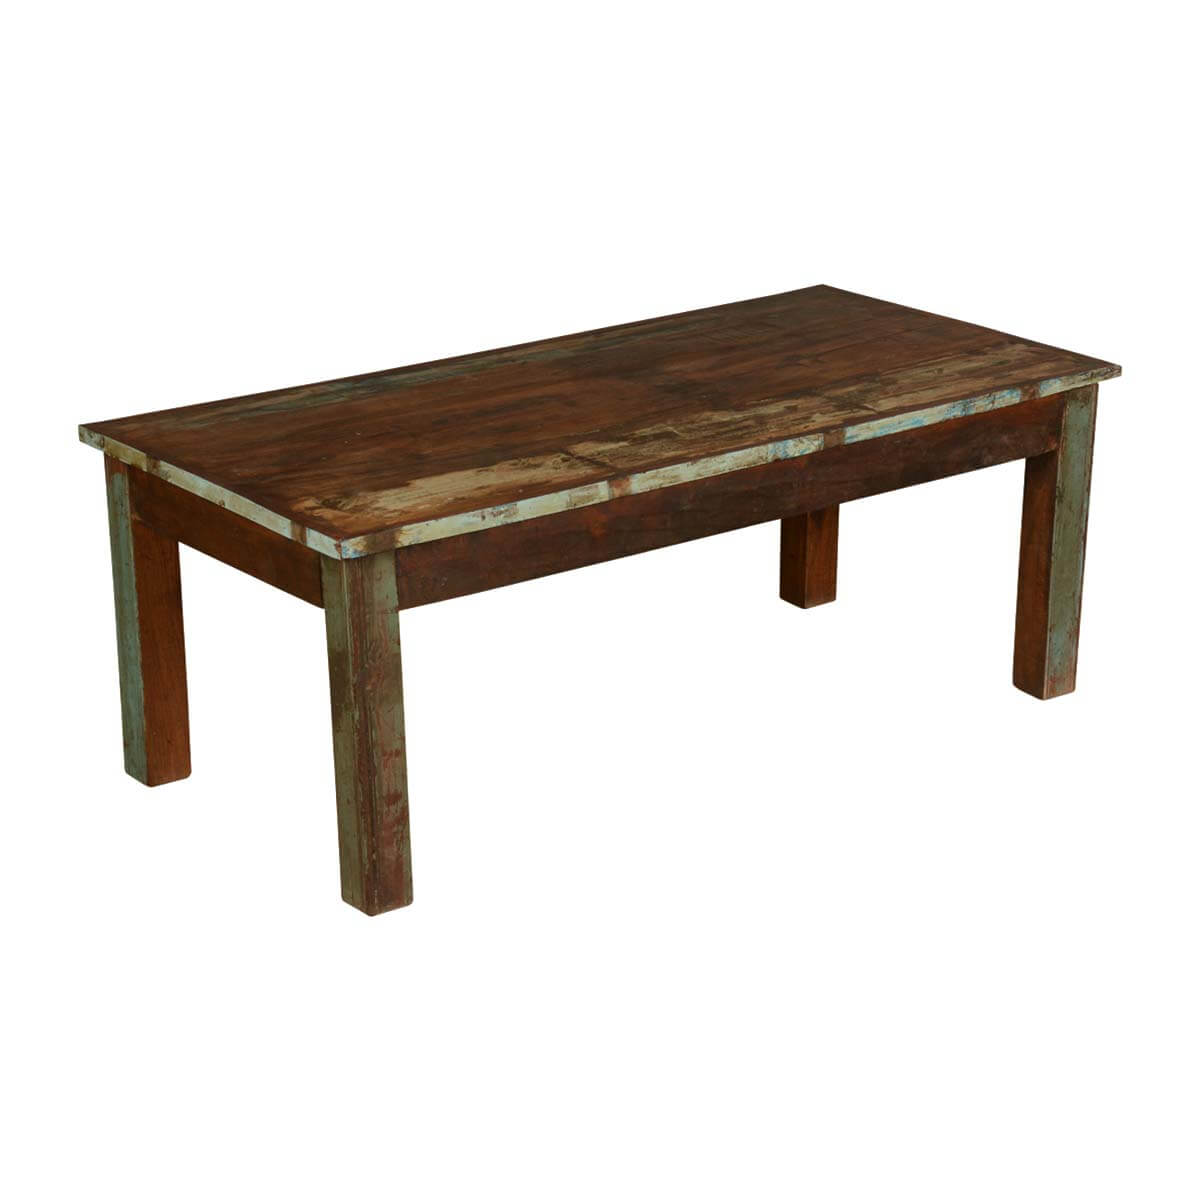 Farmhouse distressed reclaimed wood rustic coffee table Espresso coffee table